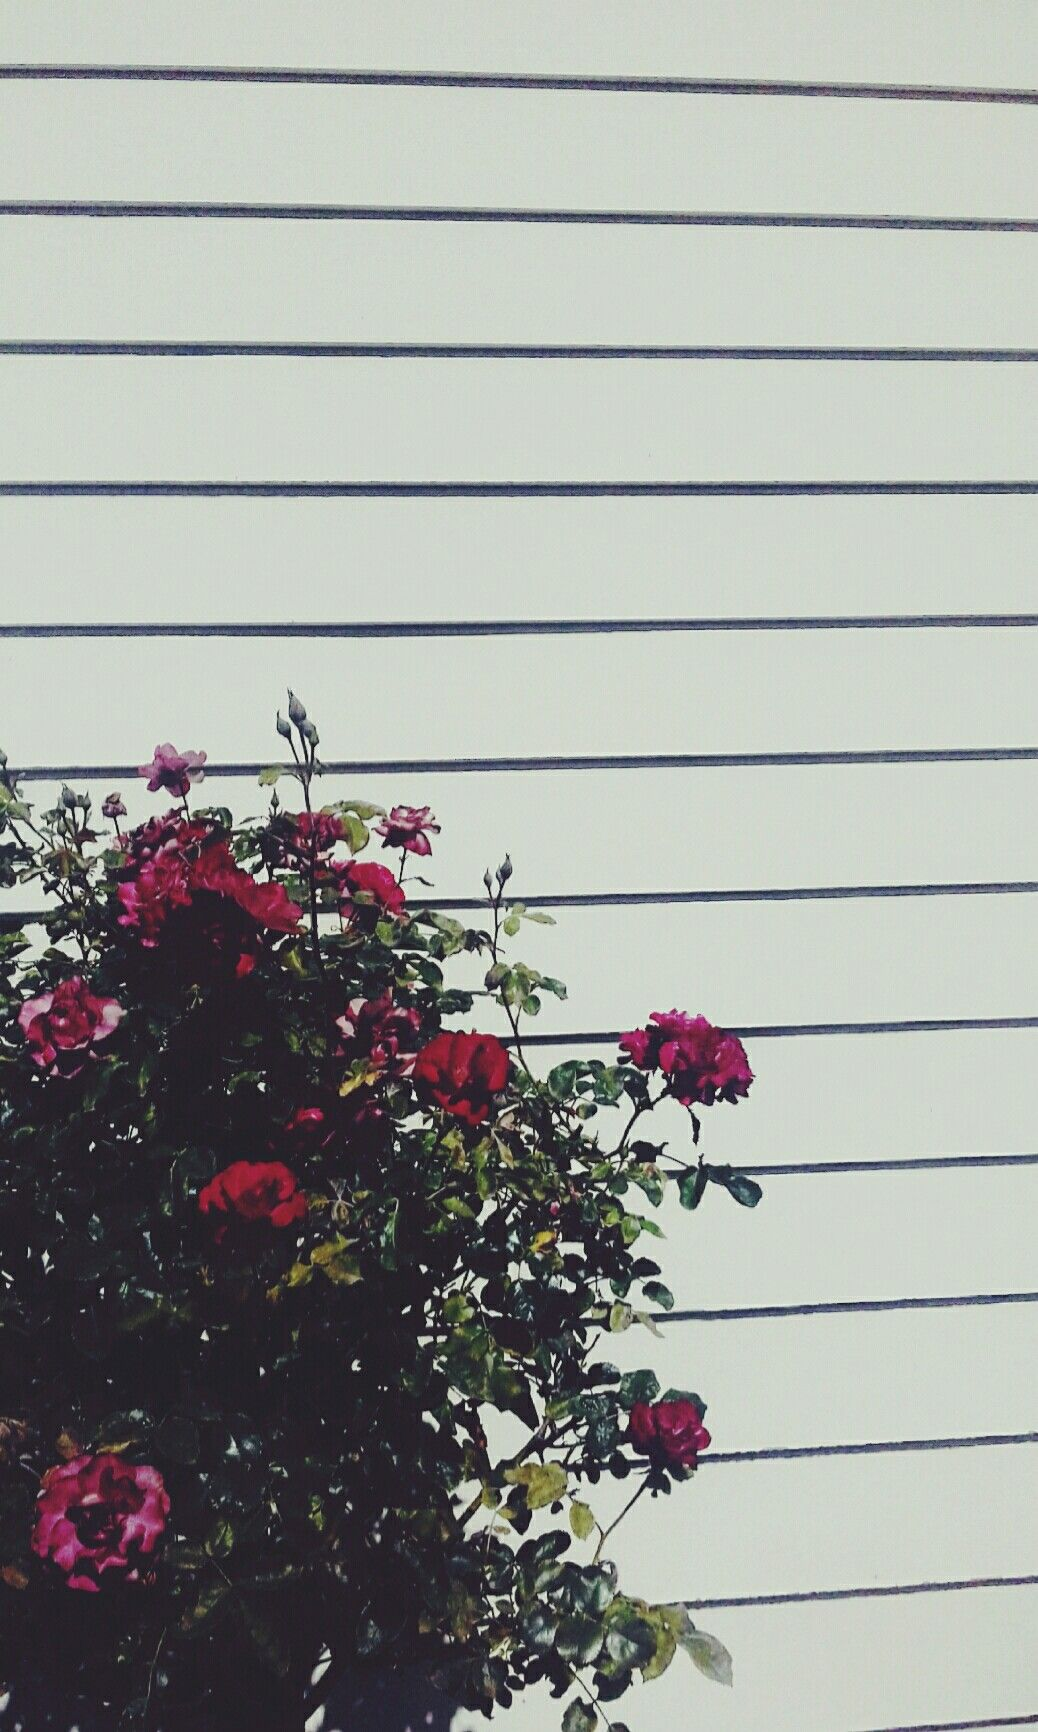 Tumblr aesthetic wallapaper roses wall grunge trendy